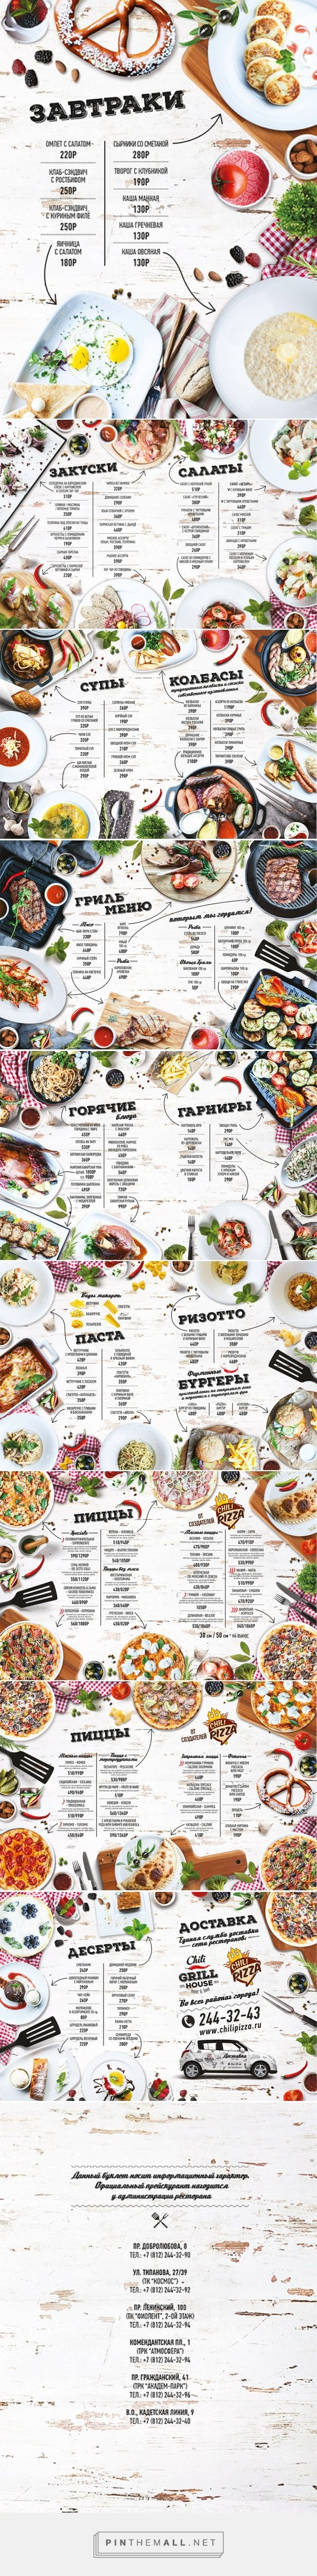 Меню ресторана «Chili Grill House» | Маркетинговое агентство Resto PR http://restopr.ru/projects/%D0%BC%D0%B5%D0%BD%D1%8E-%D1%80%D0%B5%D1%81%D1%82%D0%BE%D1%80%D0%B0%D0%BD%D0%B0-chili-grill-house/ - created via https://pinthemall.net